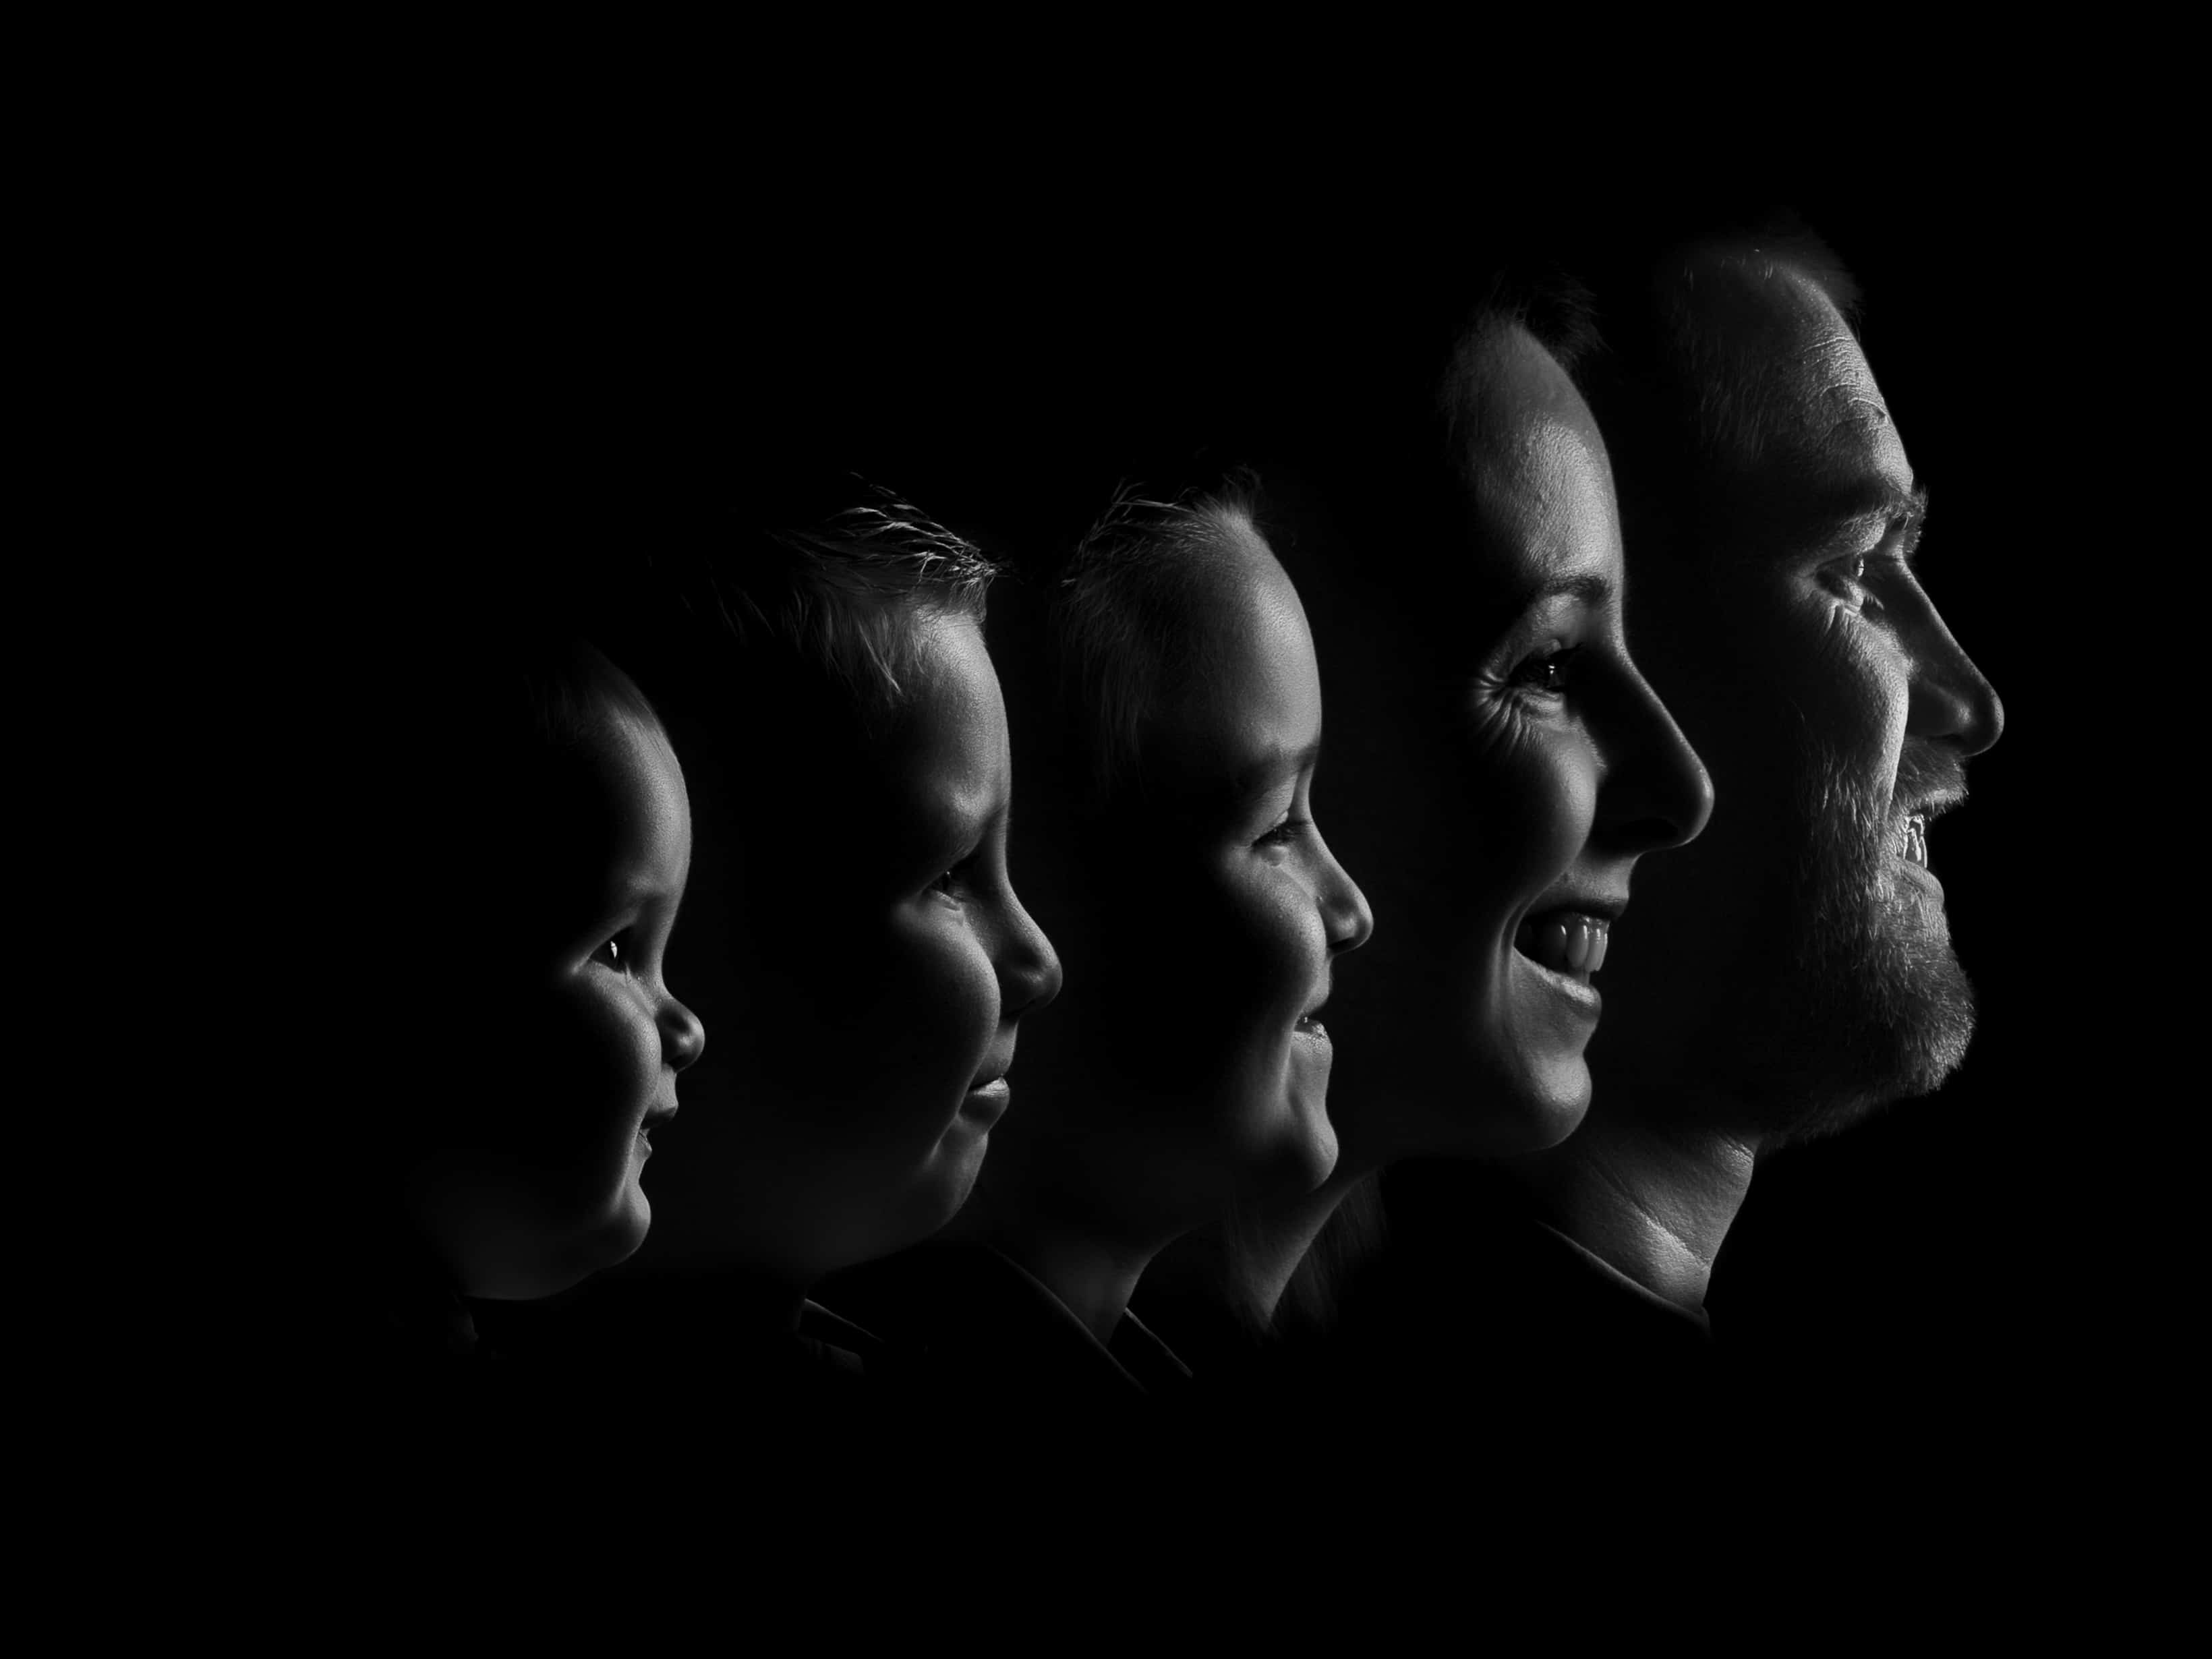 Black and white silhouette family portrait